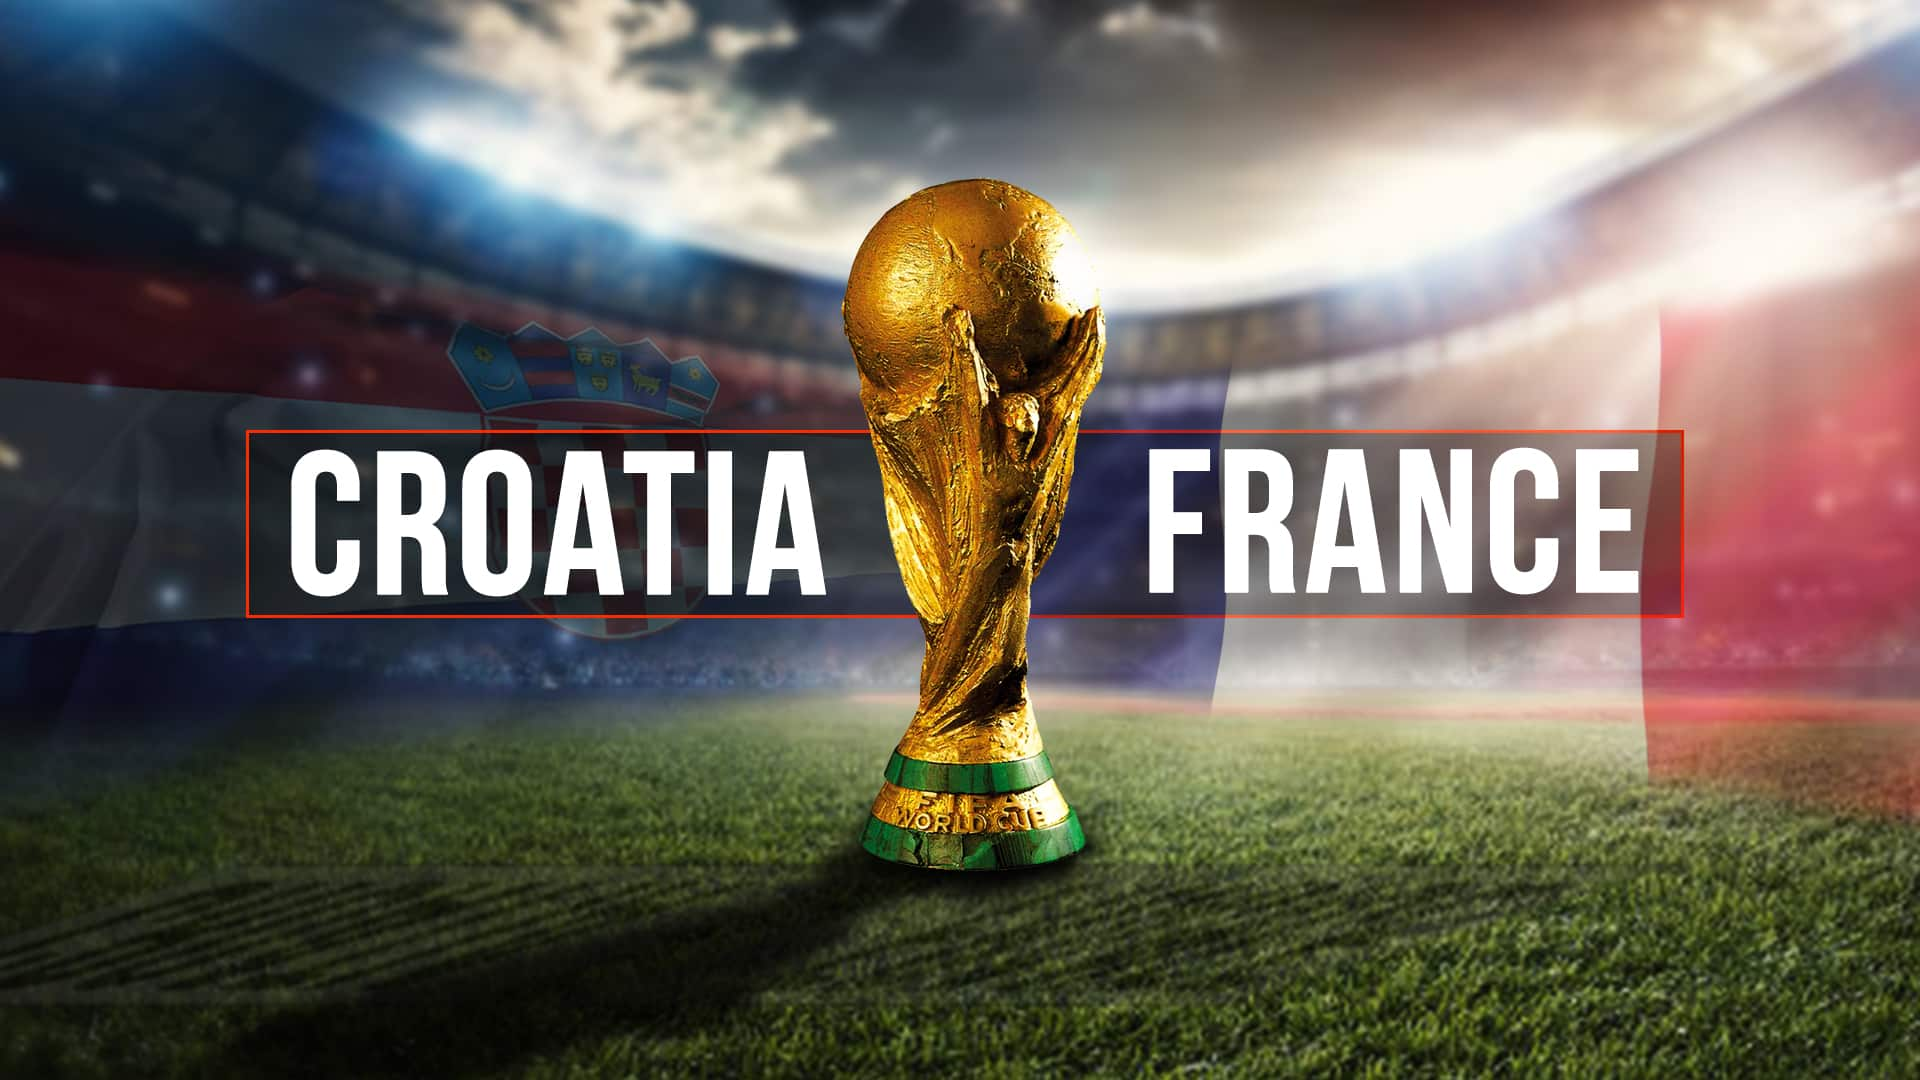 Which team will win the final of fifa world cup